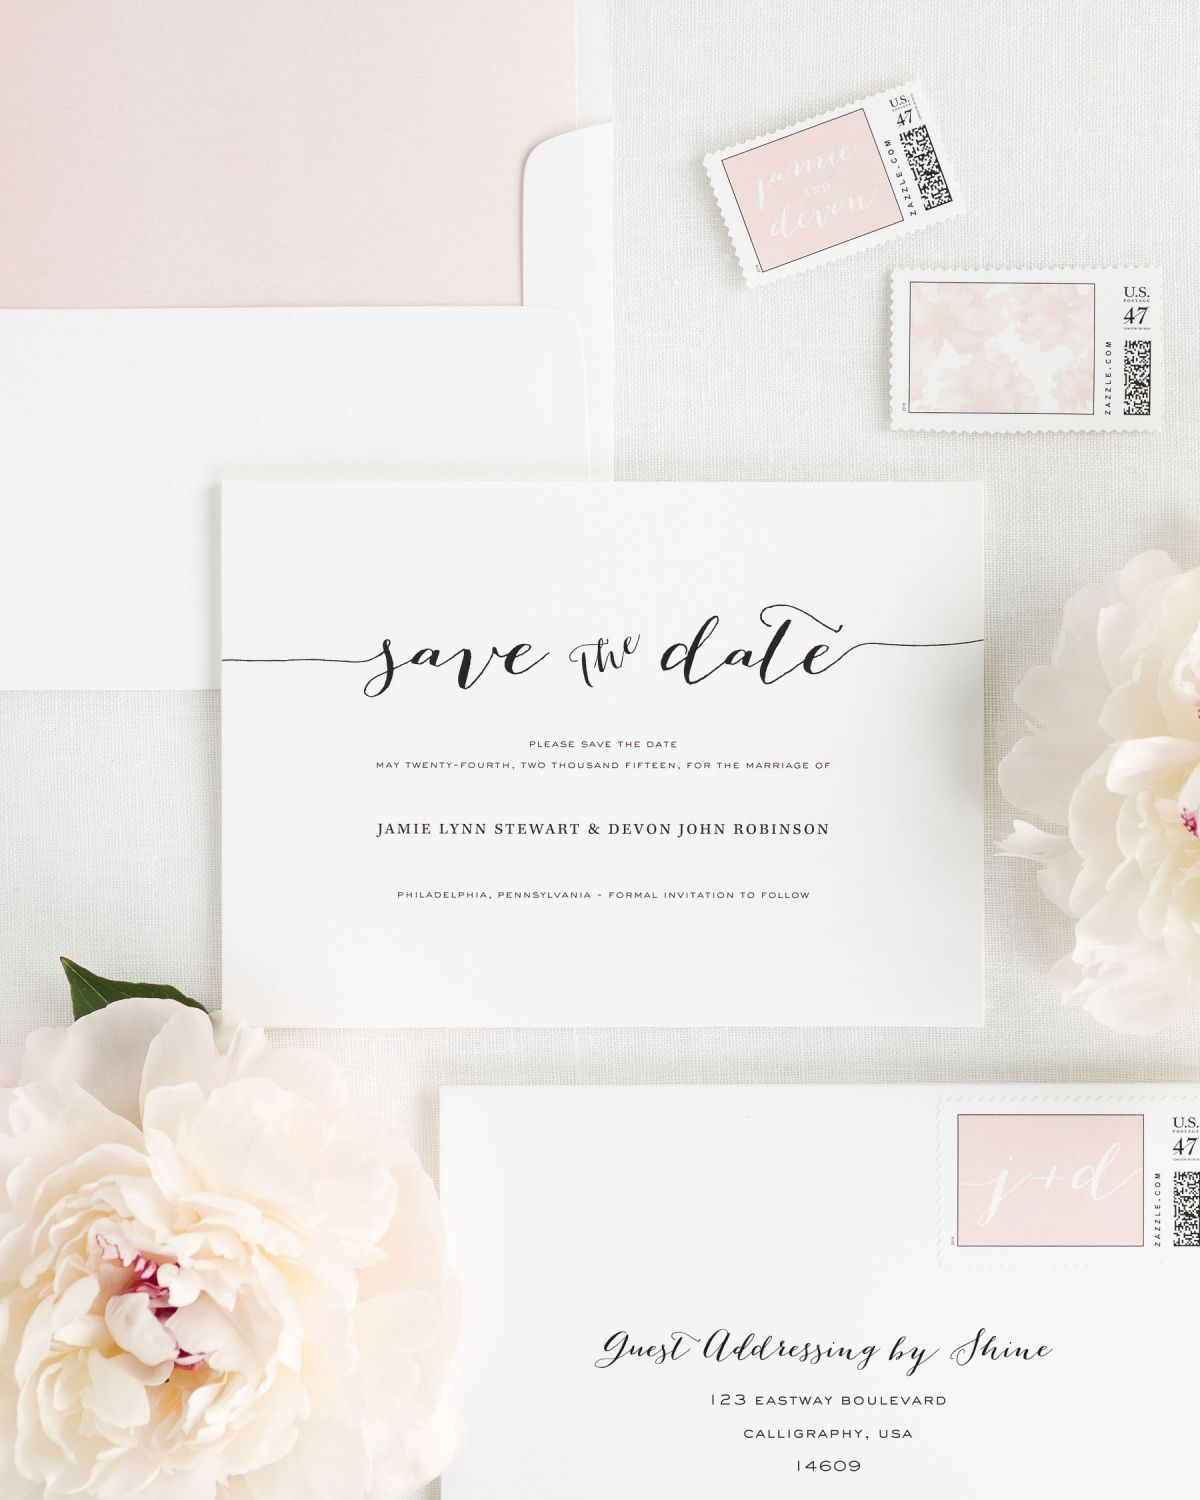 Save the Date with Blush Envelope Liner and Personalized Stamps